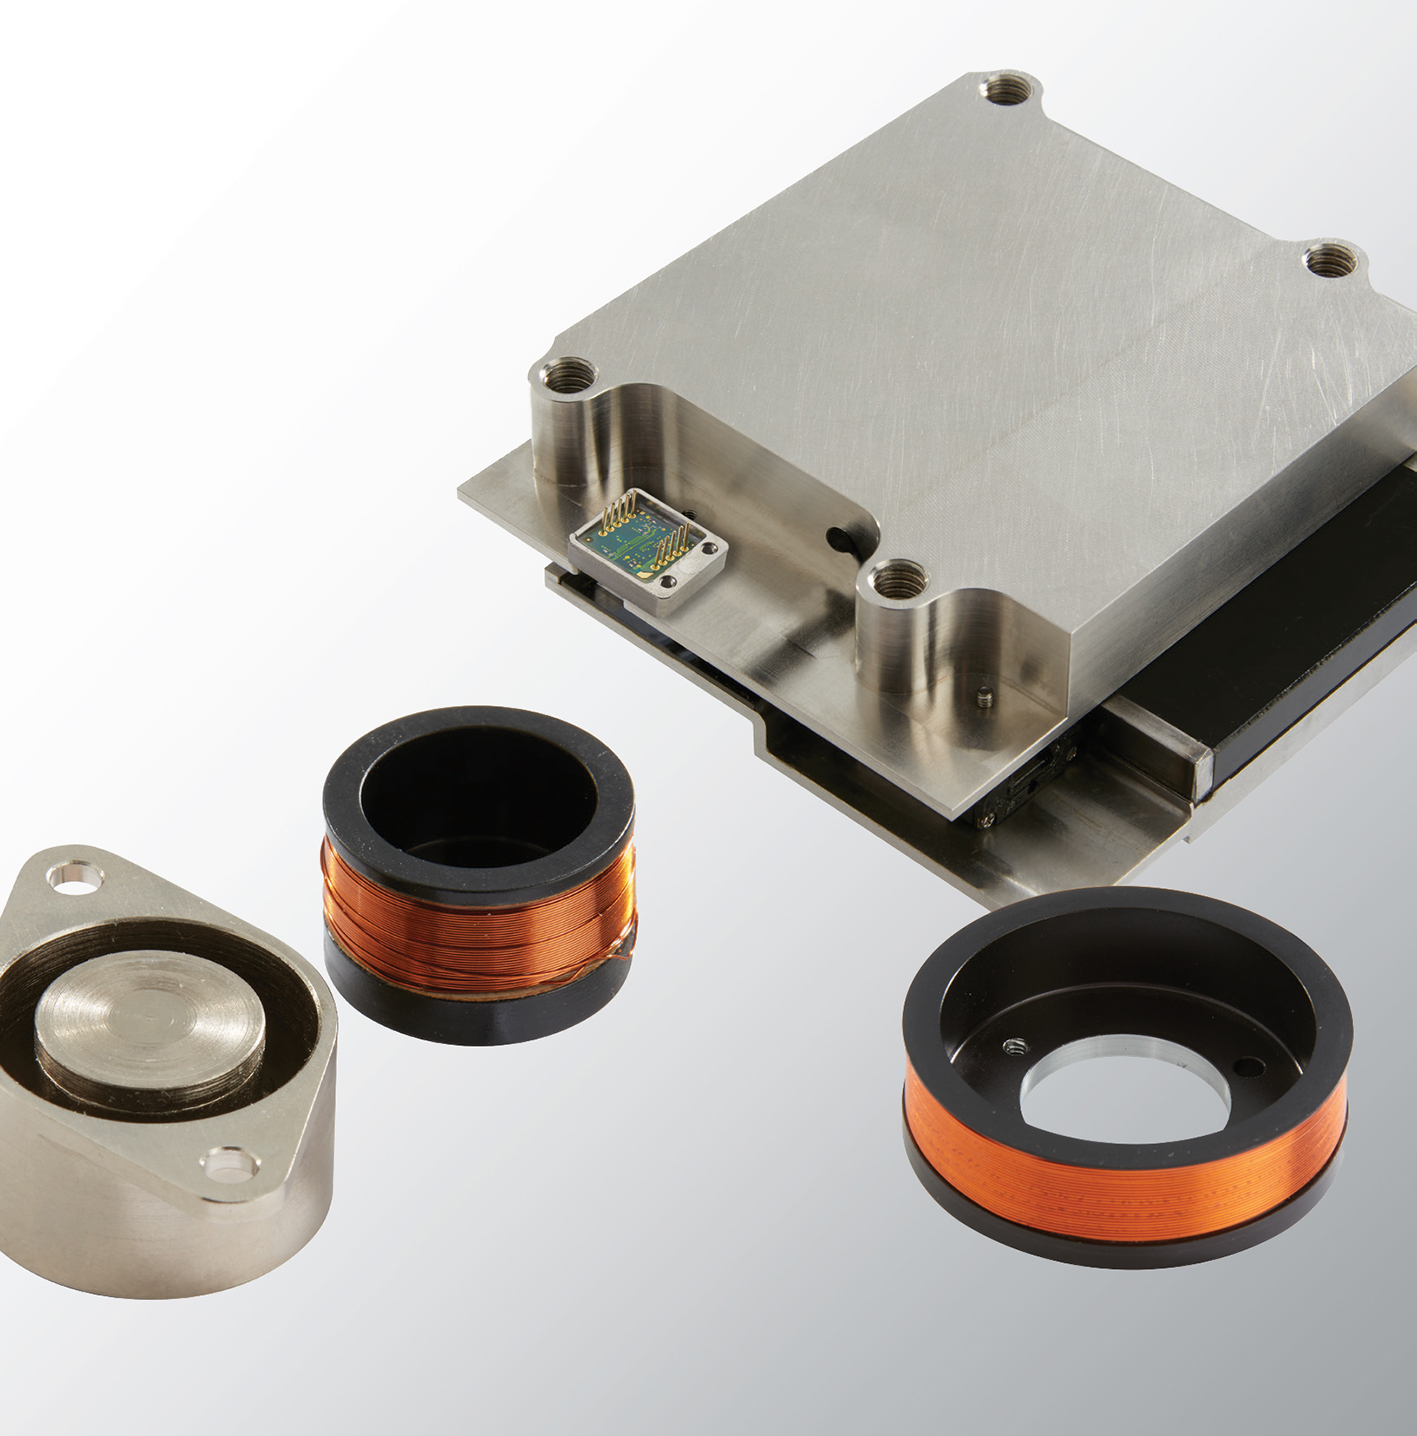 Precision motion technologies are rising to the future challenges of photonics